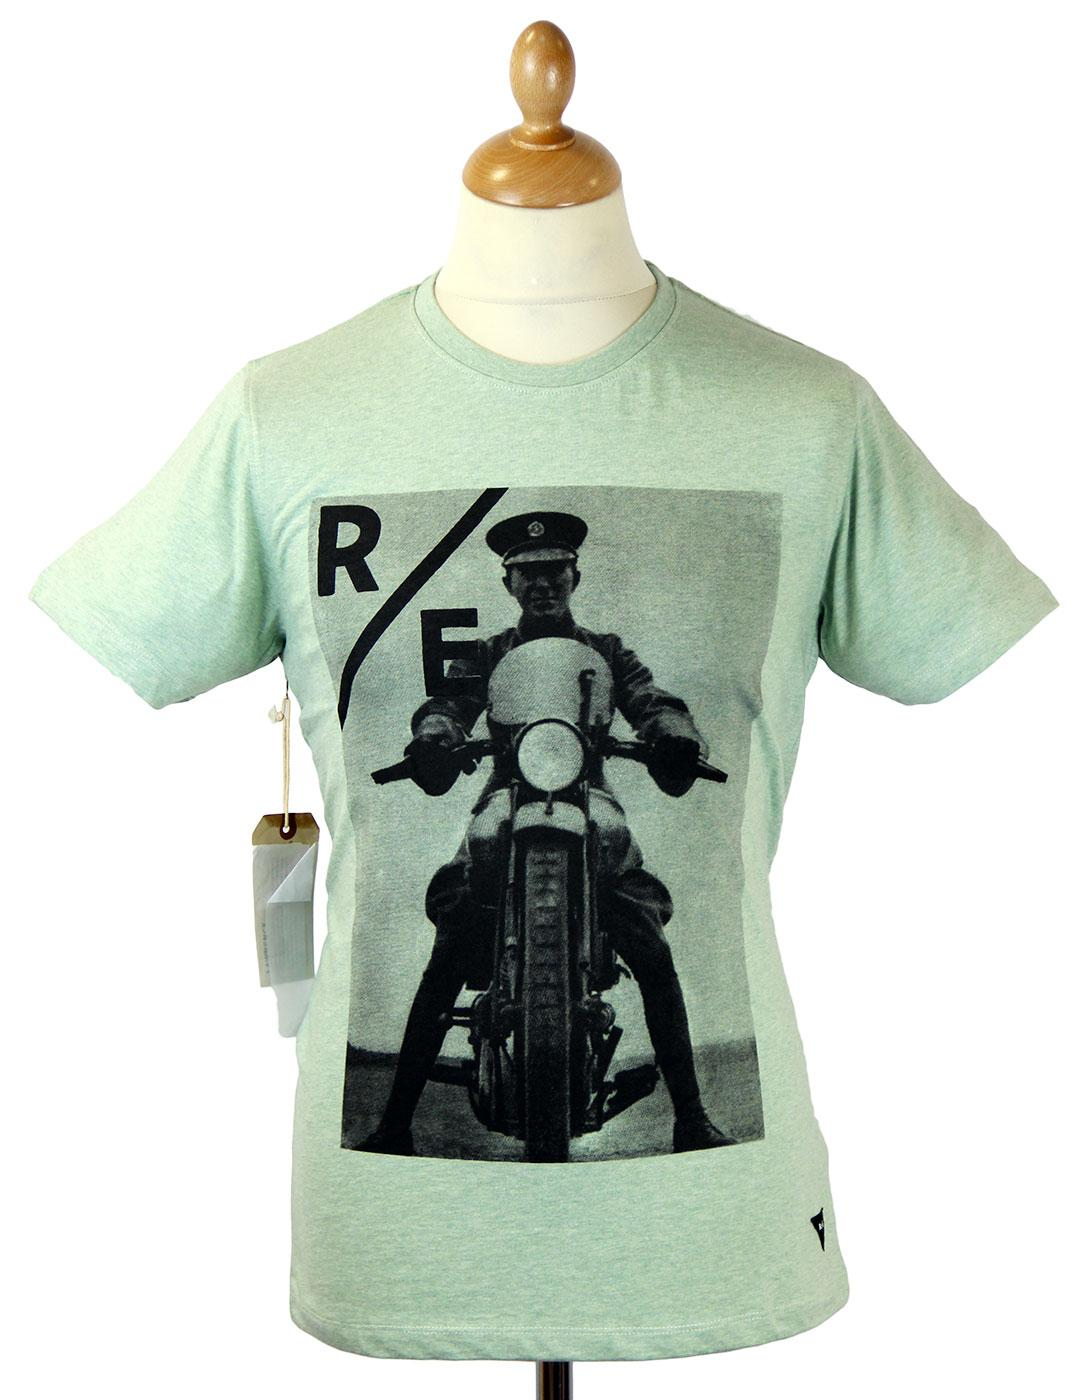 Lawrence REALM & EMPIRE Retro WWI Photo T-Shirt CG